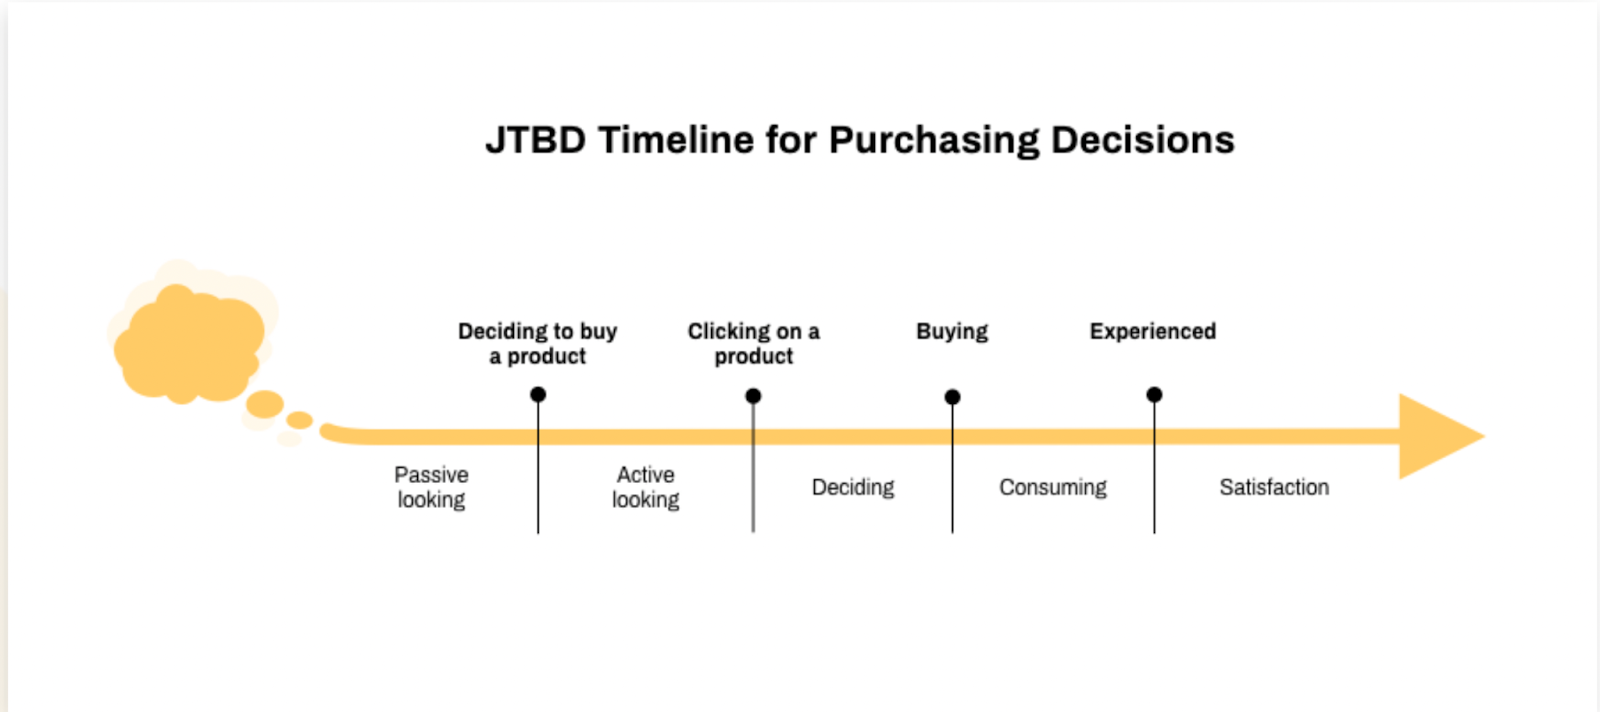 guided selling and purchasing decisions journey